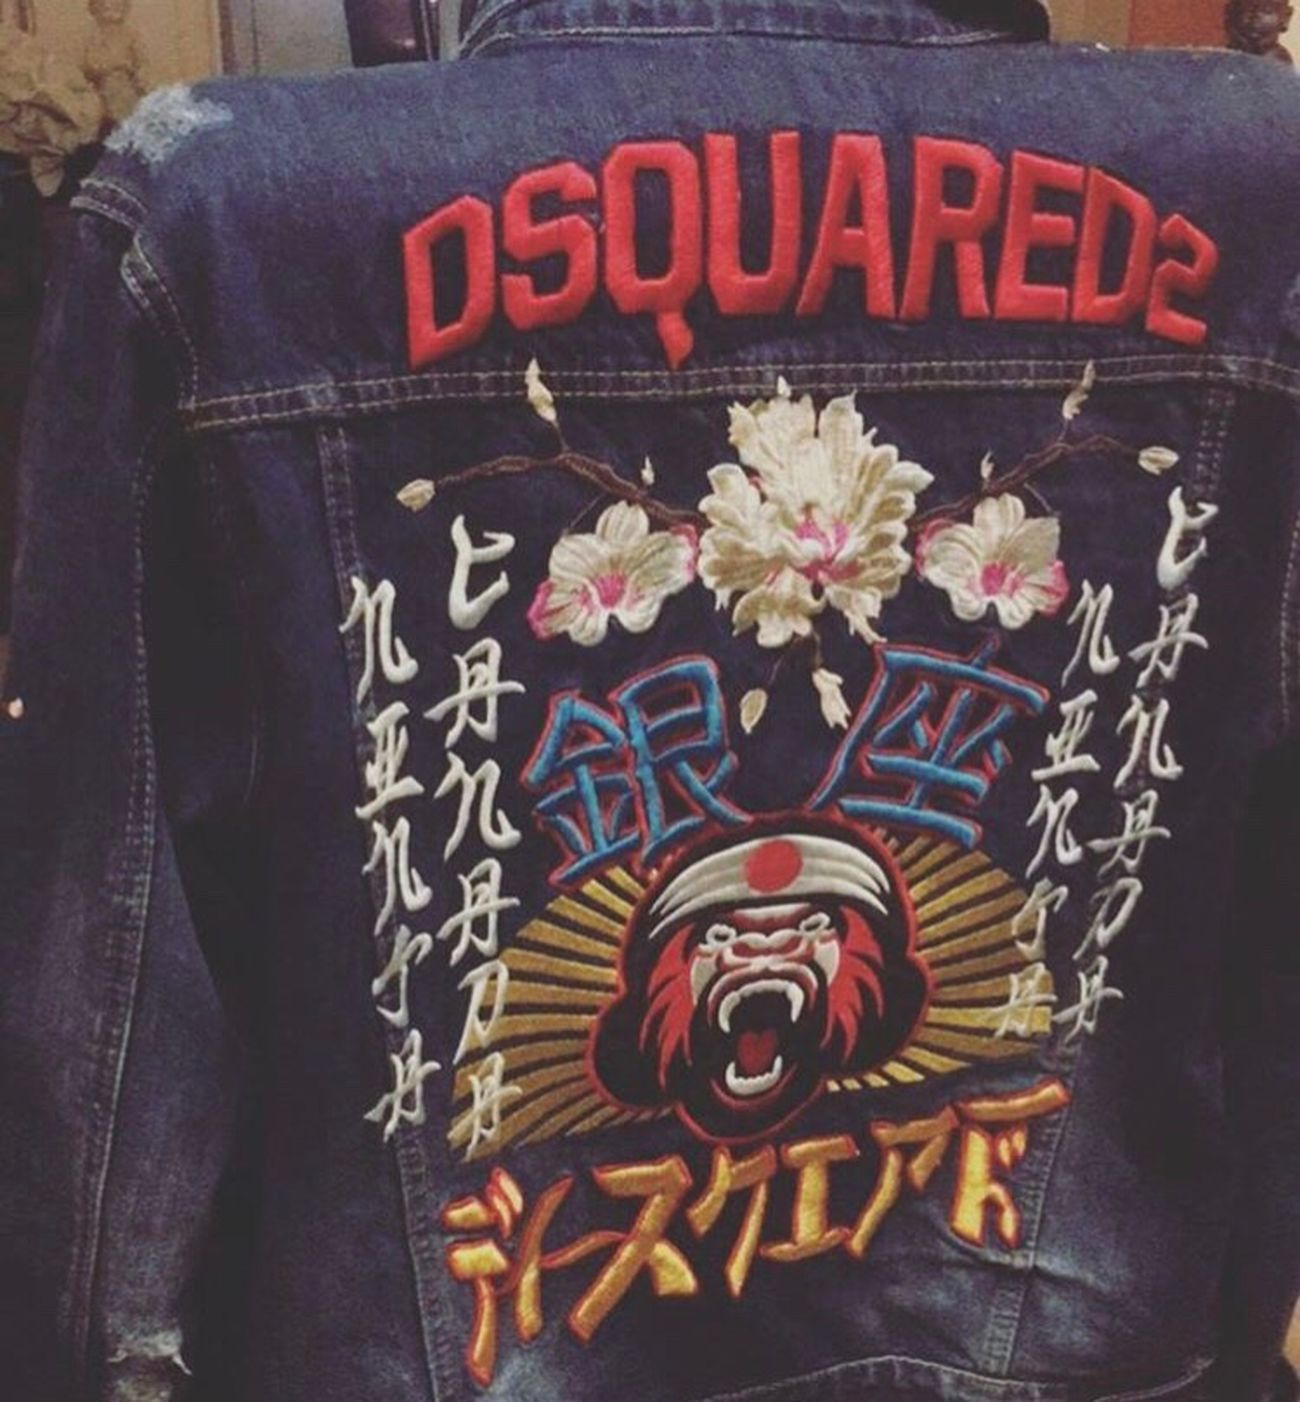 DSQUARED2 Dsquared  Denim Denim Jacket Brands